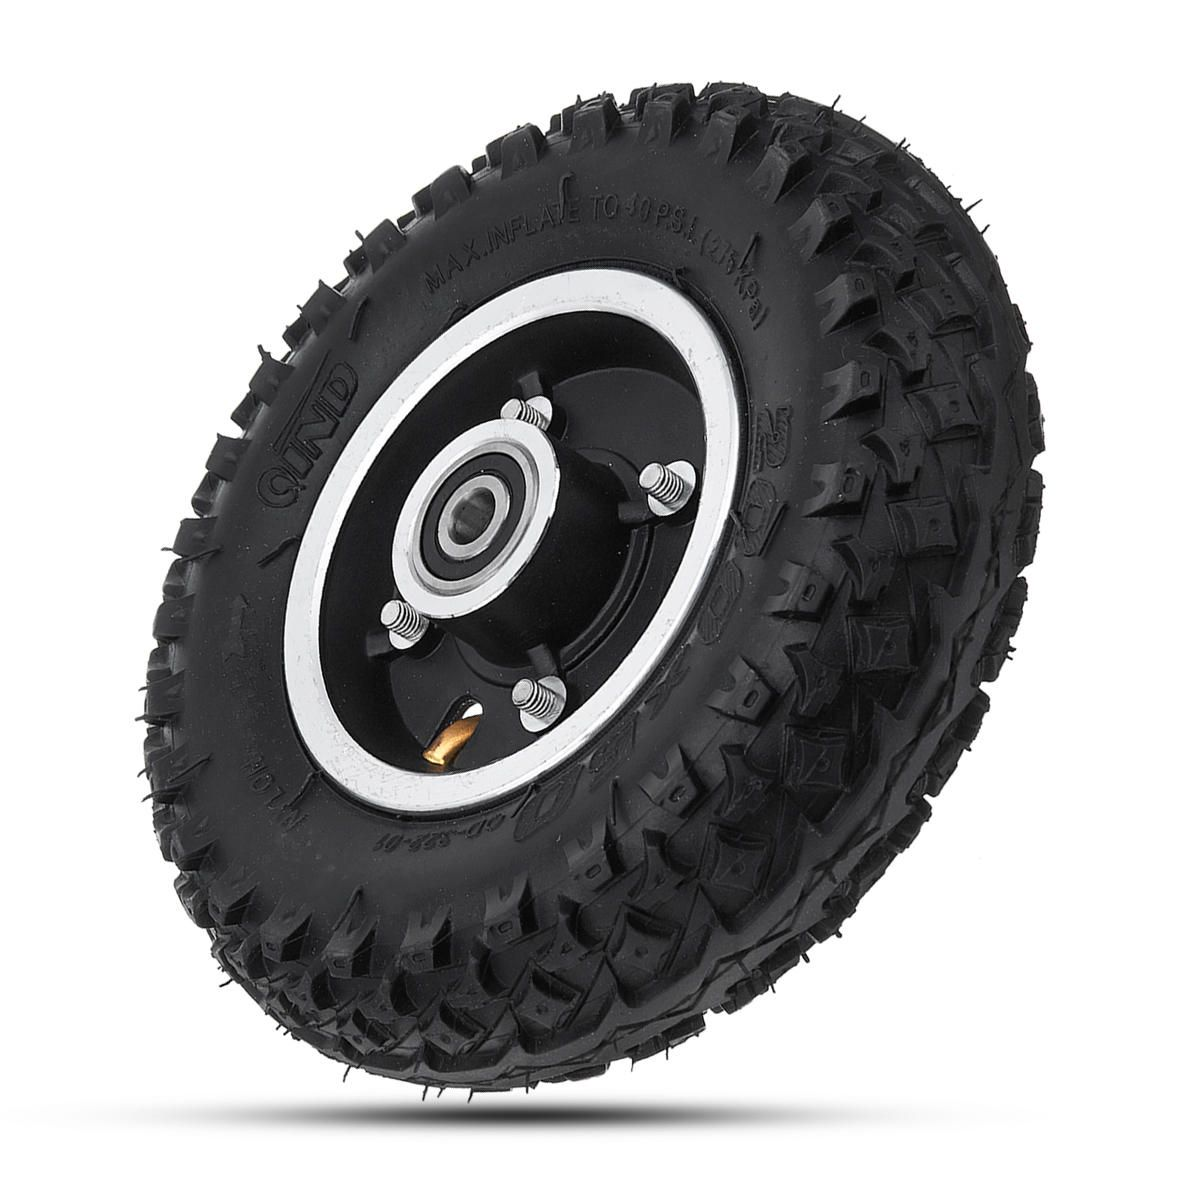 BCK US$26.45 200*50mm Inflatable Longboard Rubber Off Road Wheel For Electrical Skateboard